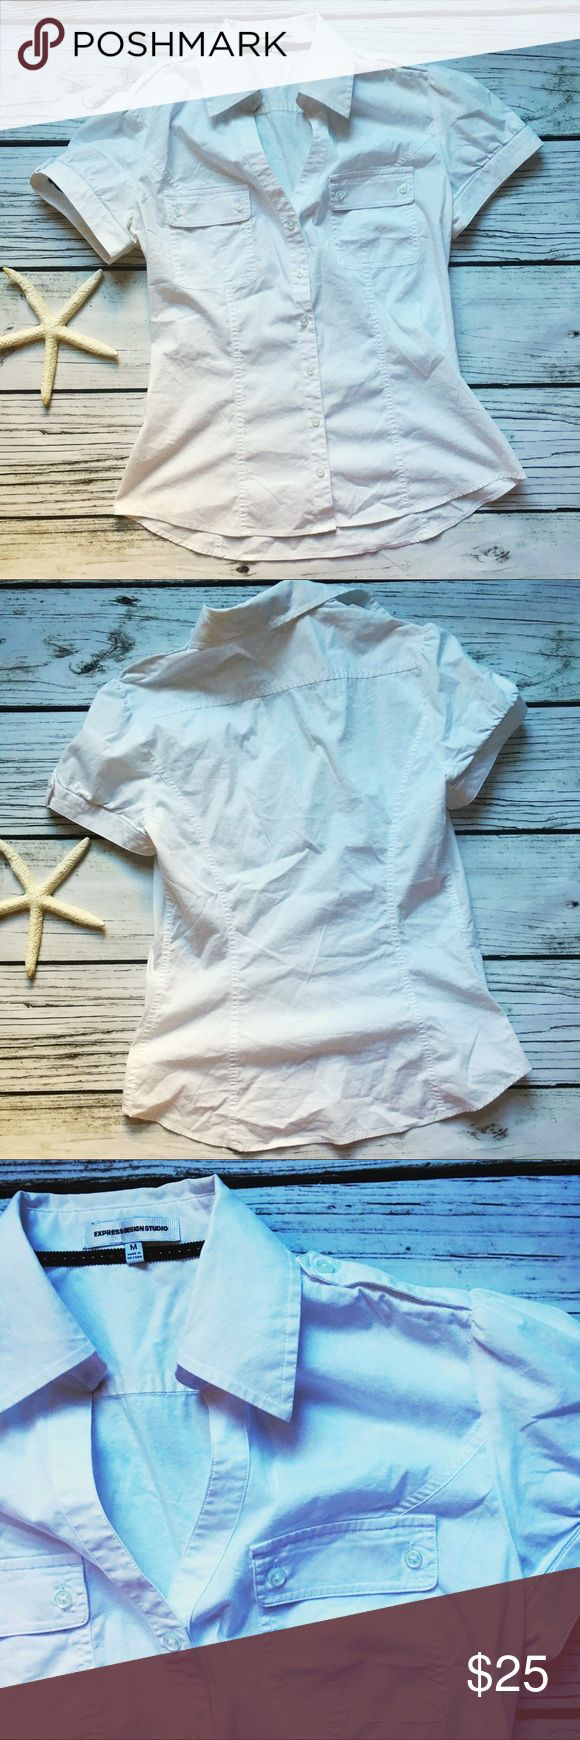 Express Design Studio • White Button Blouse Medium Express Design Studio Button Blouse  Size Medium  White w rushing tailored short sleeve square neck. Excellent condition no rips or stains Express Tops Blouses